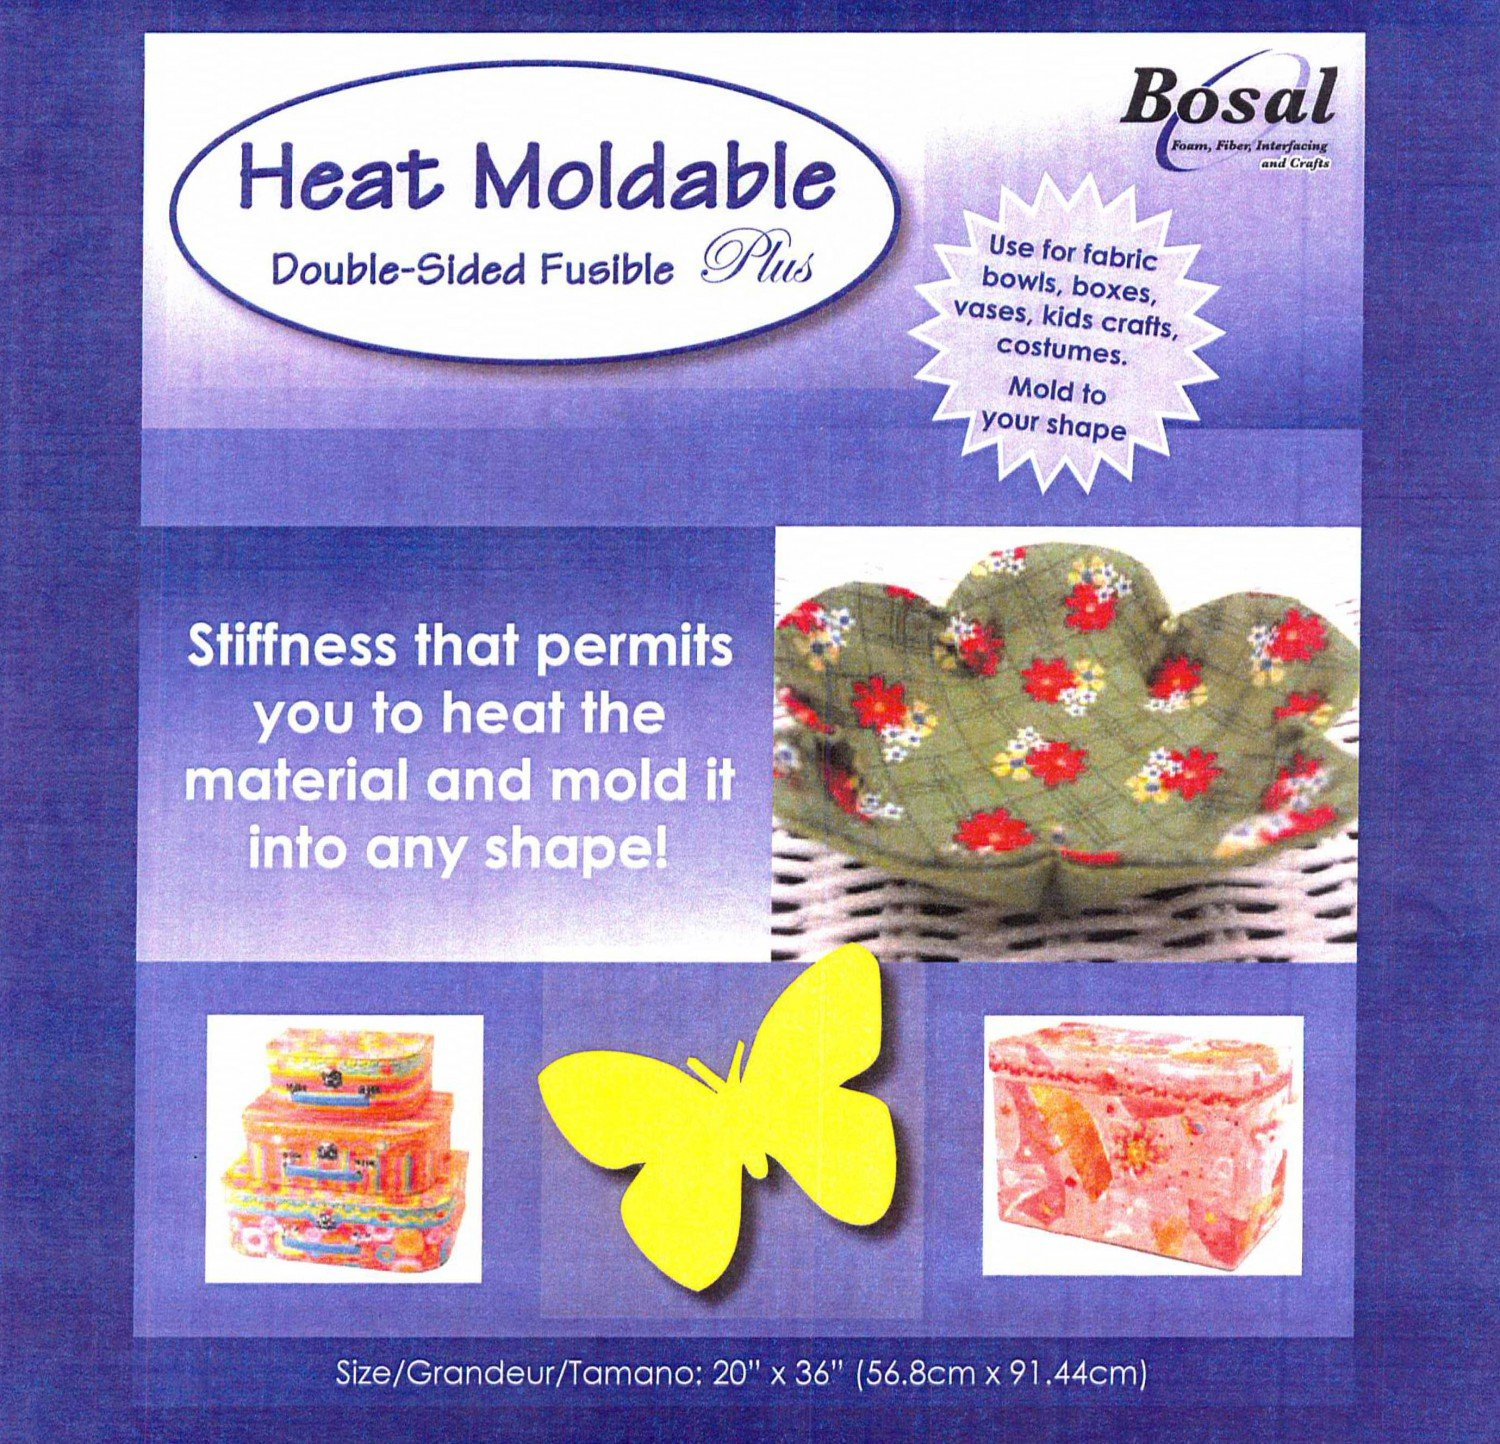 Bosal Heat Moldable Double sided Fusible Plus Sheets 9 x 12